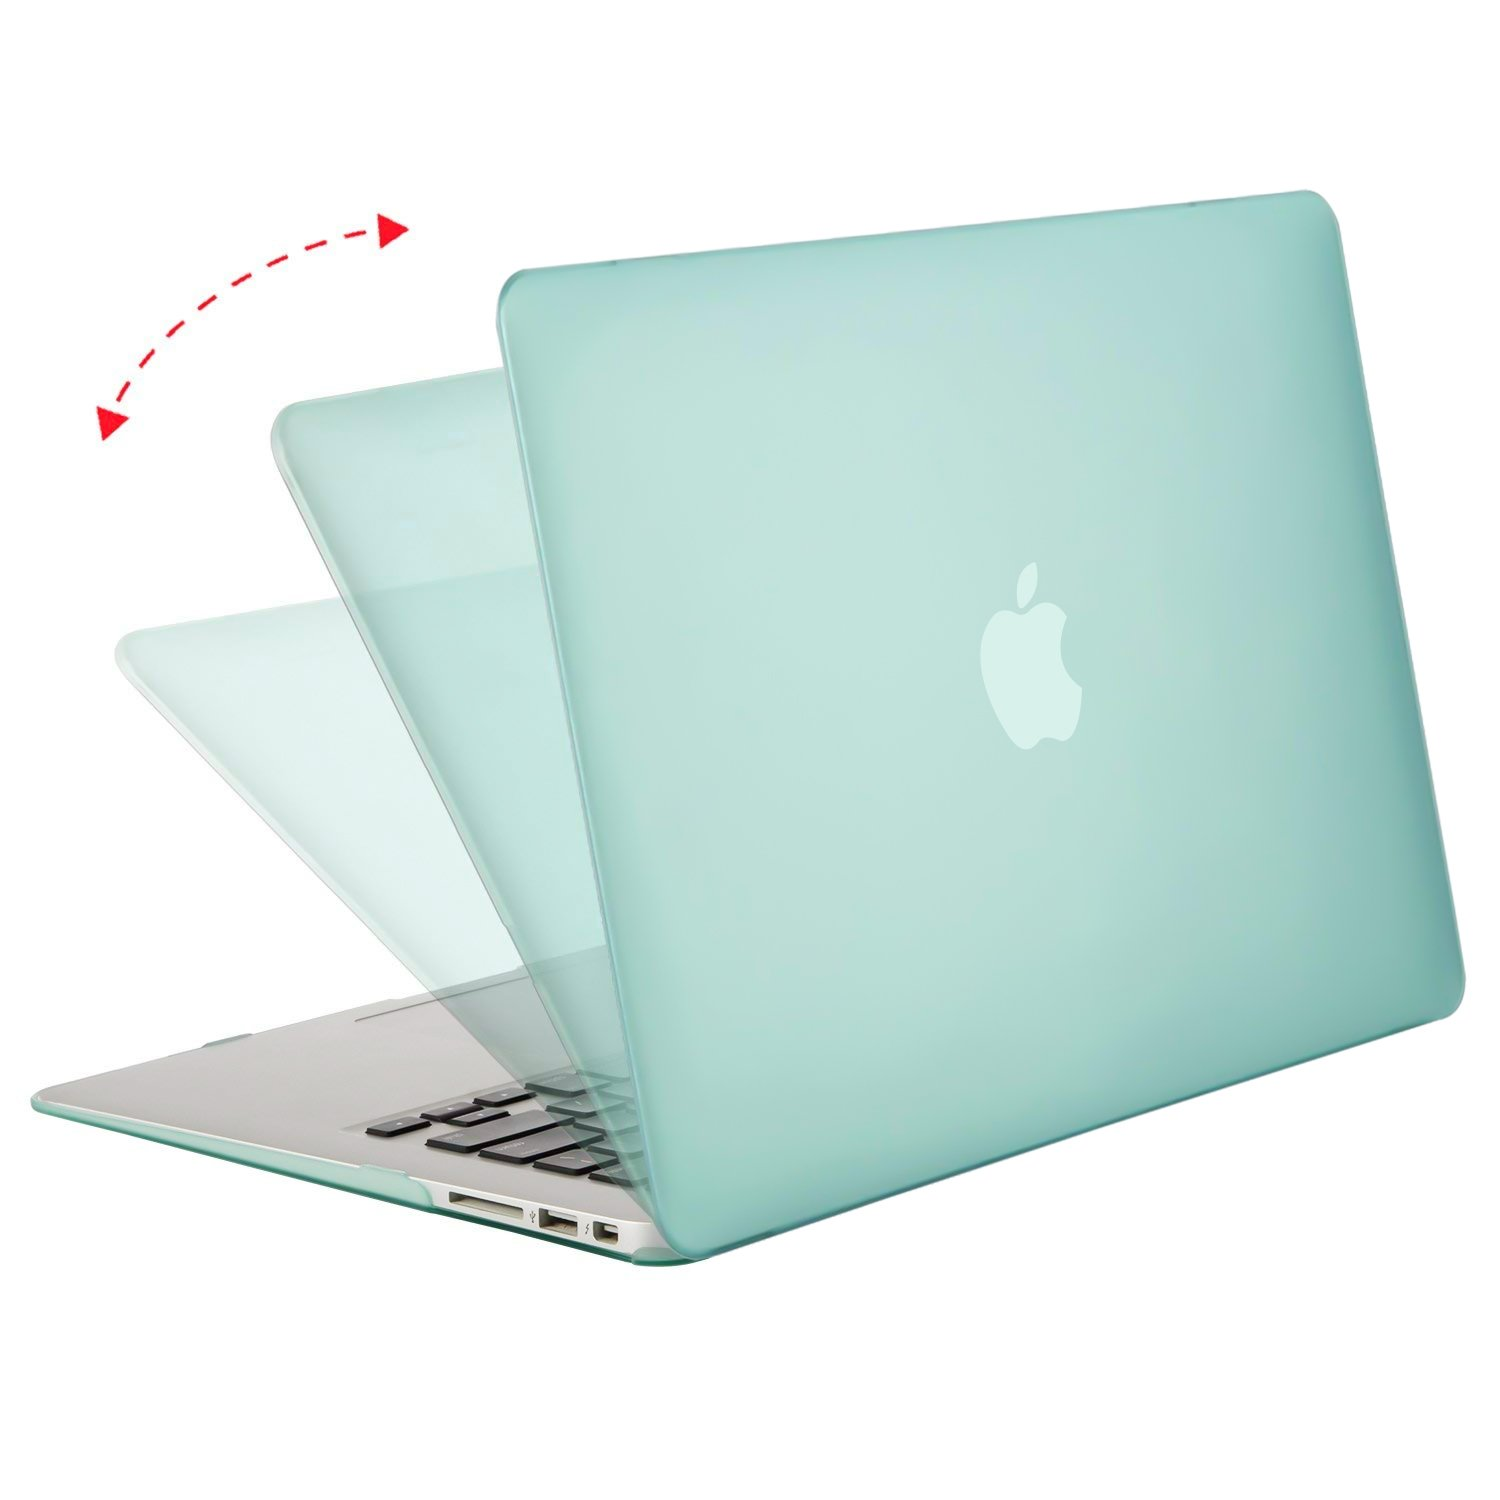 Ultra Slim Plastic Protective Snap On Shell Cover MOSISO Hard Case Compatible MacBook Air 13 inch Model A1369 // A1466 Silver Older Version Release 2010-2017